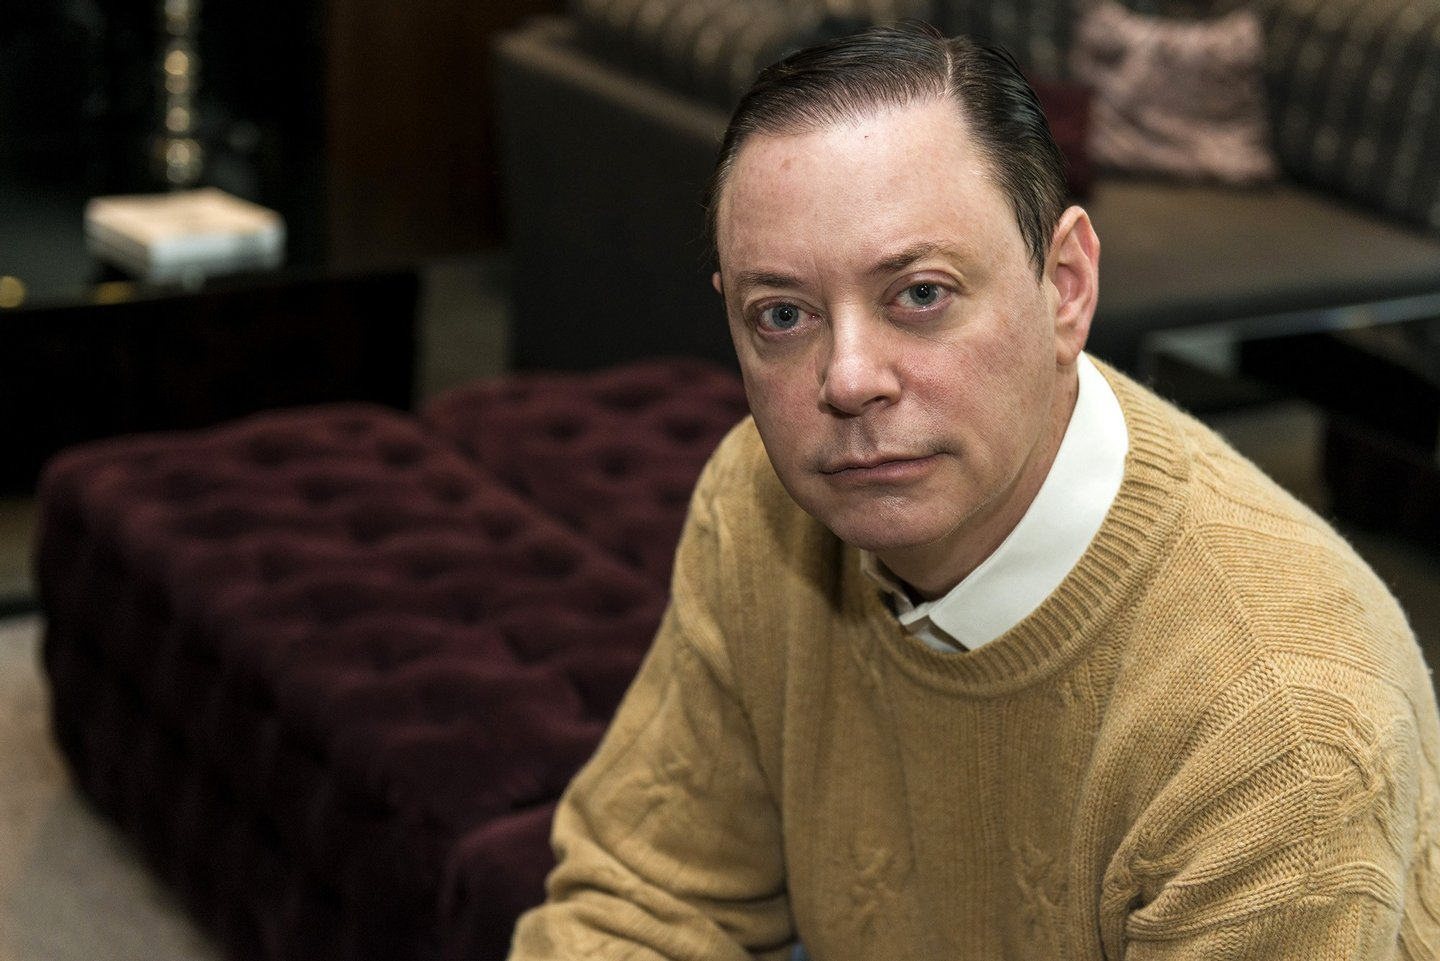 andrew solomon Andrew solomon (born october 30, 1963) is a writer on politics, culture and psychology, who lives in new york city and londonhe has written for the new york times, the new yorker, artforum, travel and leisure, and other publications on a range of subjects, including depression, soviet artists, the cultural rebirth of afghanistan, libyan politics, and deaf politics.